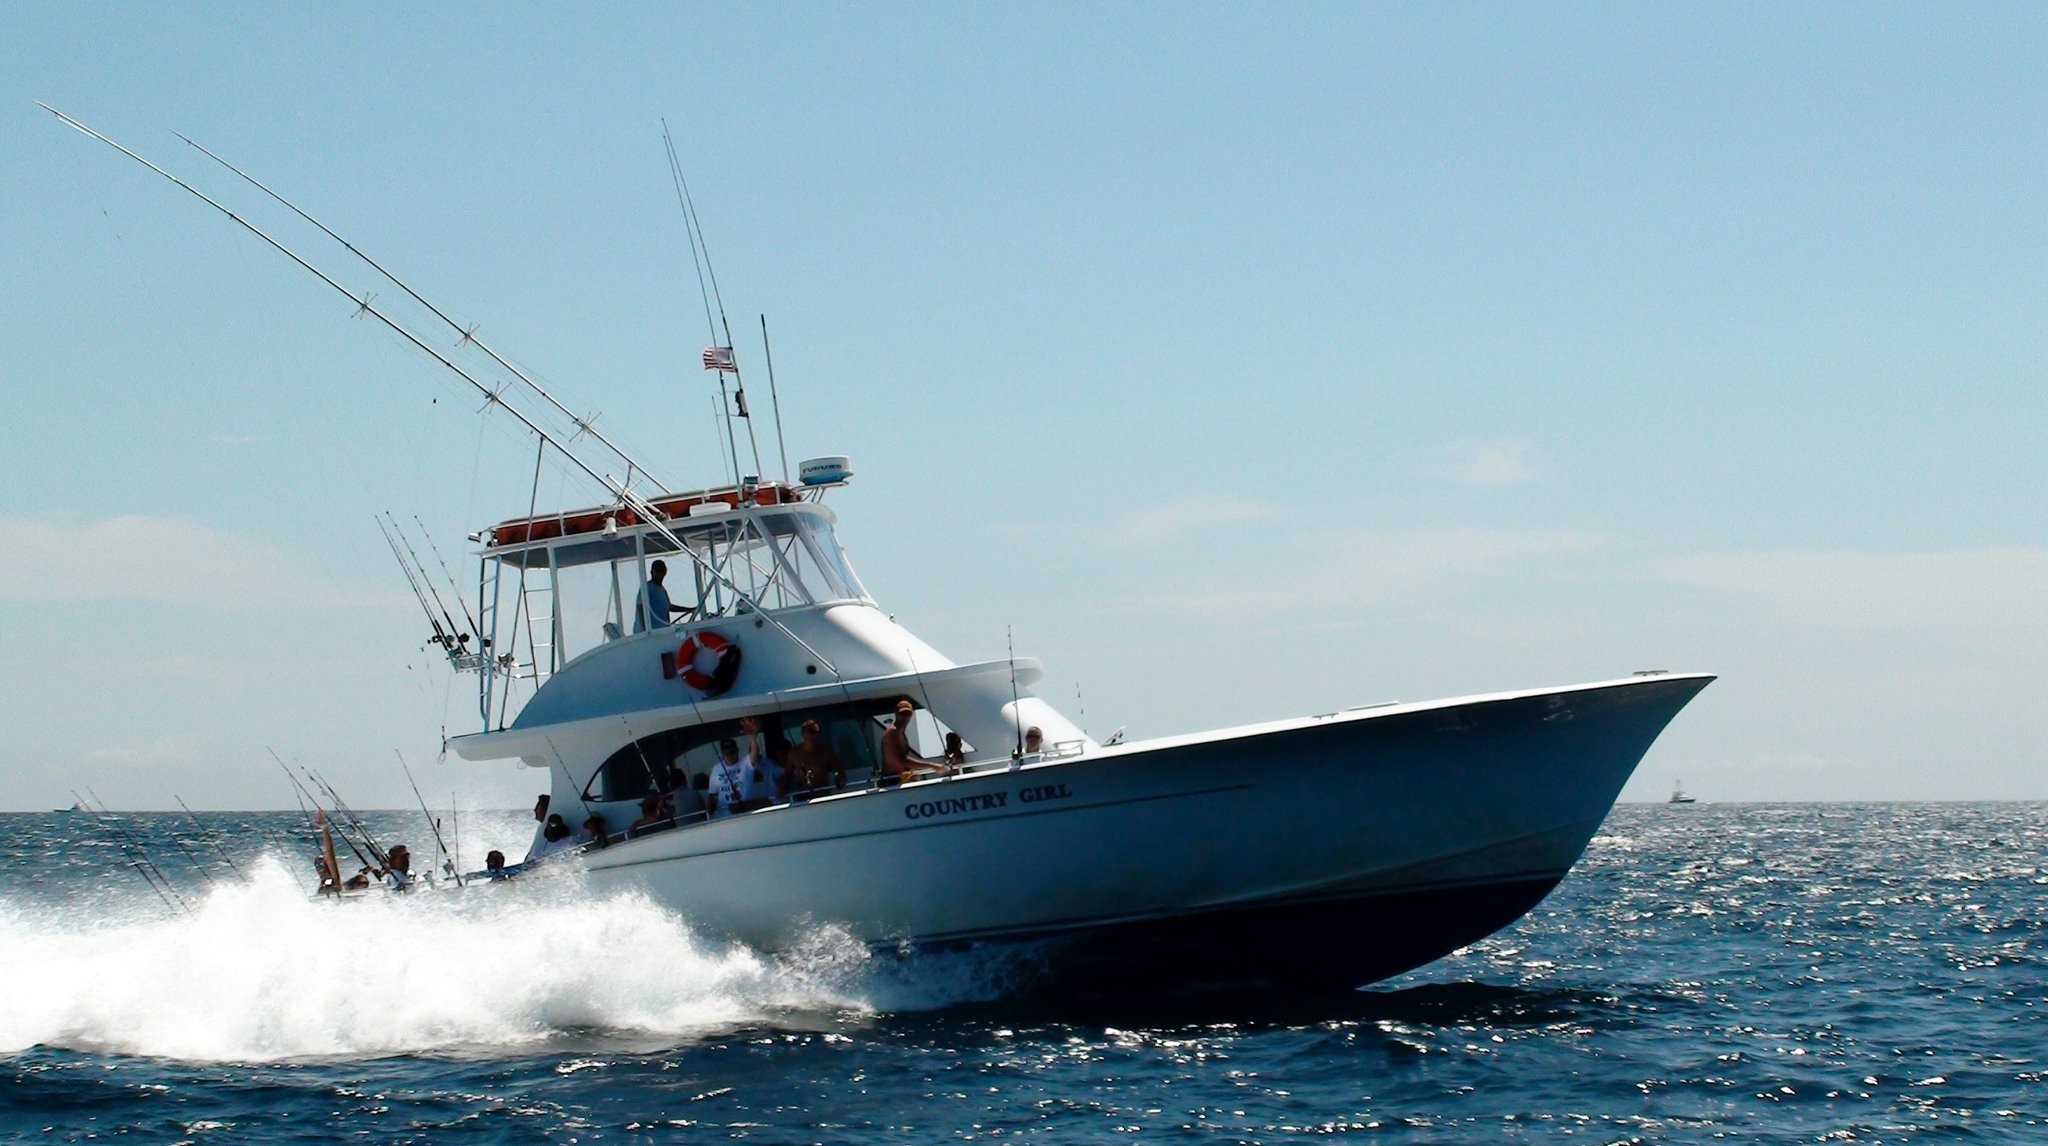 Country girl gulf stream fishing charter outer banks for Fishing charters outer banks